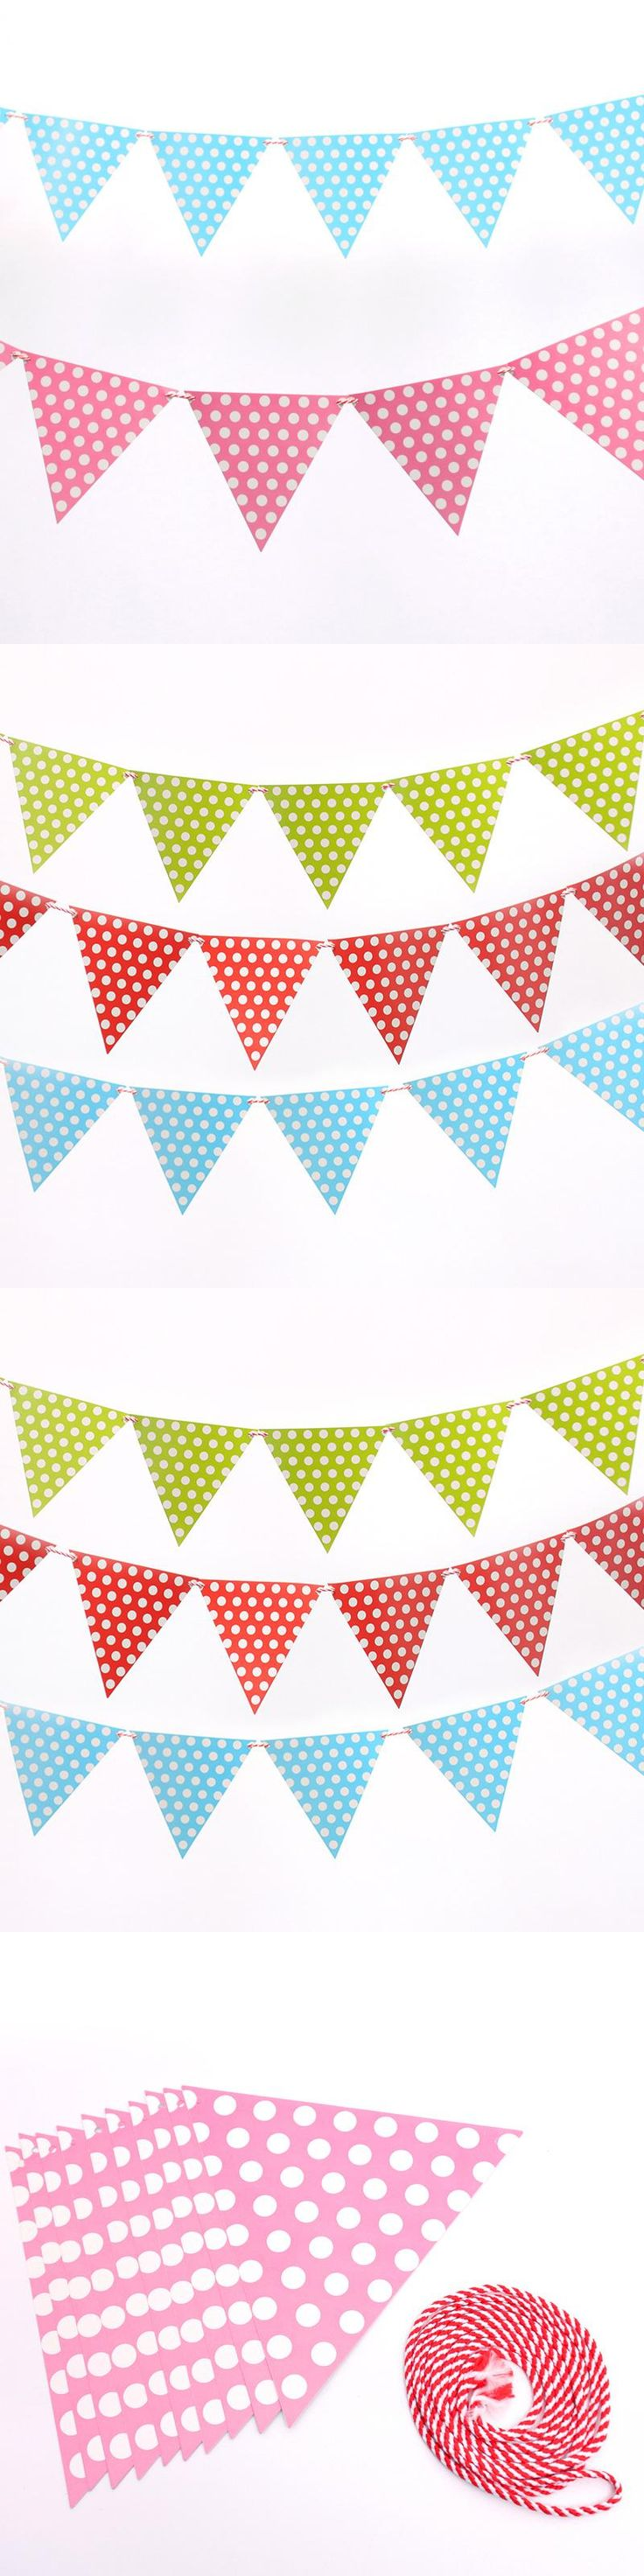 2m handmade Polka Dot Blue Pink Party Bunting Flags/Banners/Pennants Outdoor party Decoration 1 set including 10 small flags